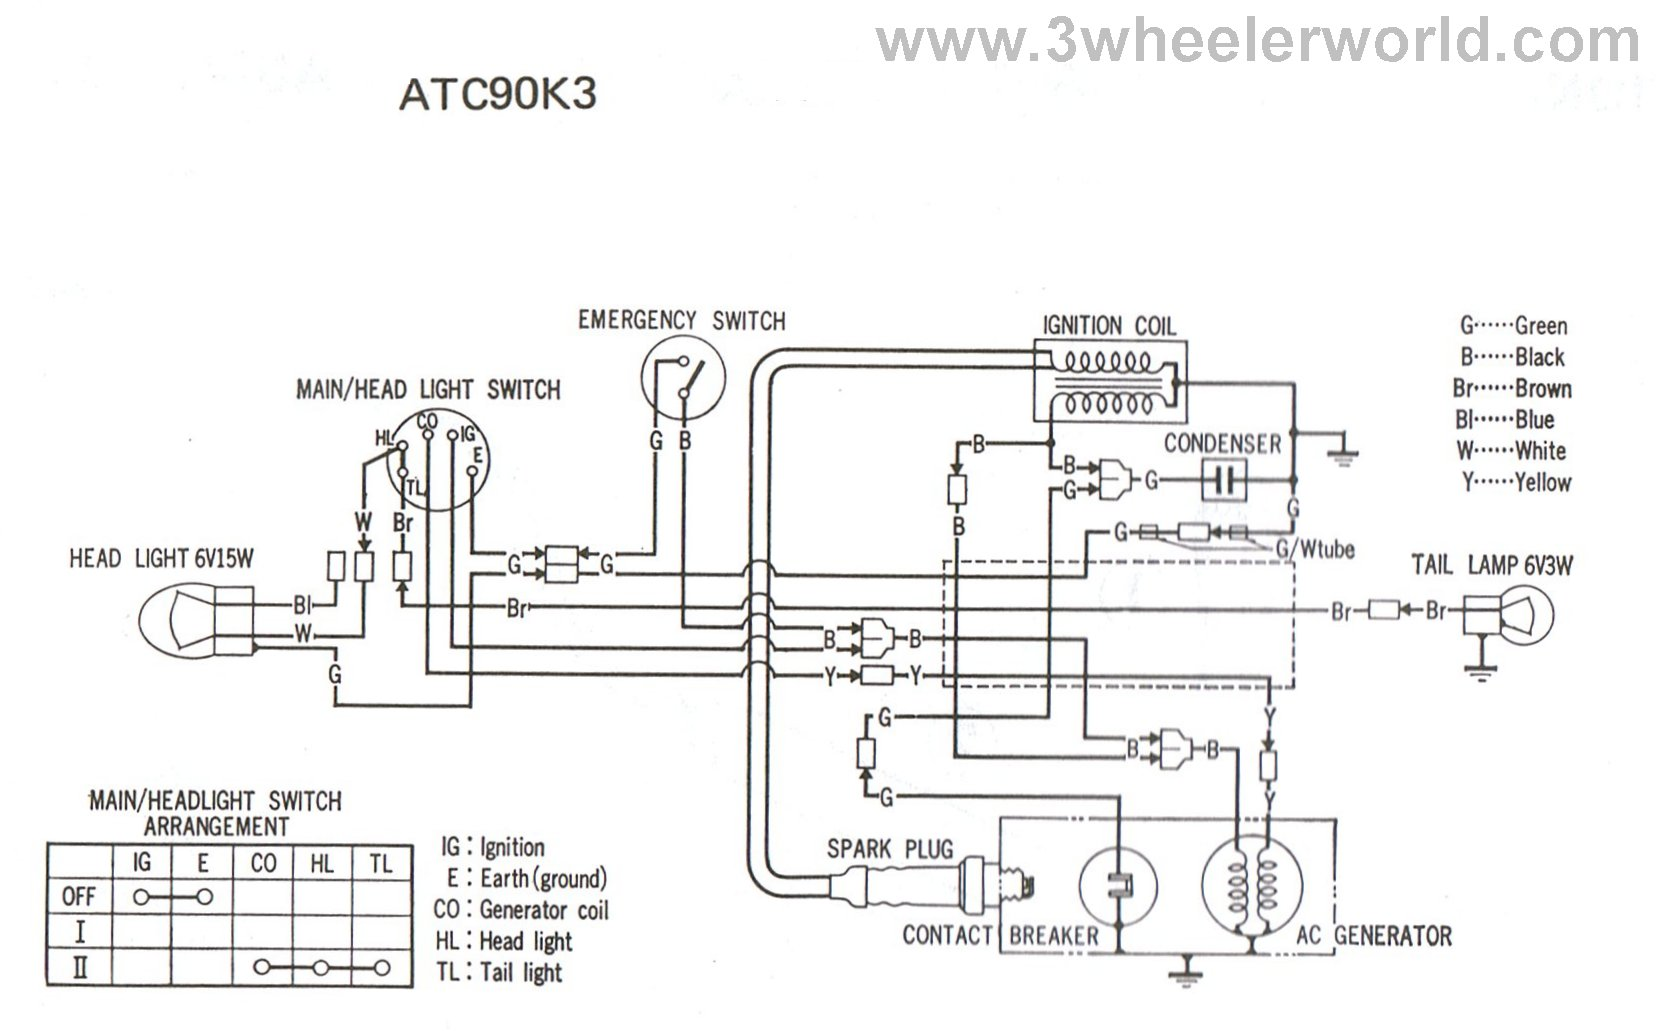 ATC90K3HM wiring diagrams \u2022 j squared co 1999 arctic cat 400 wiring diagram at edmiracle.co